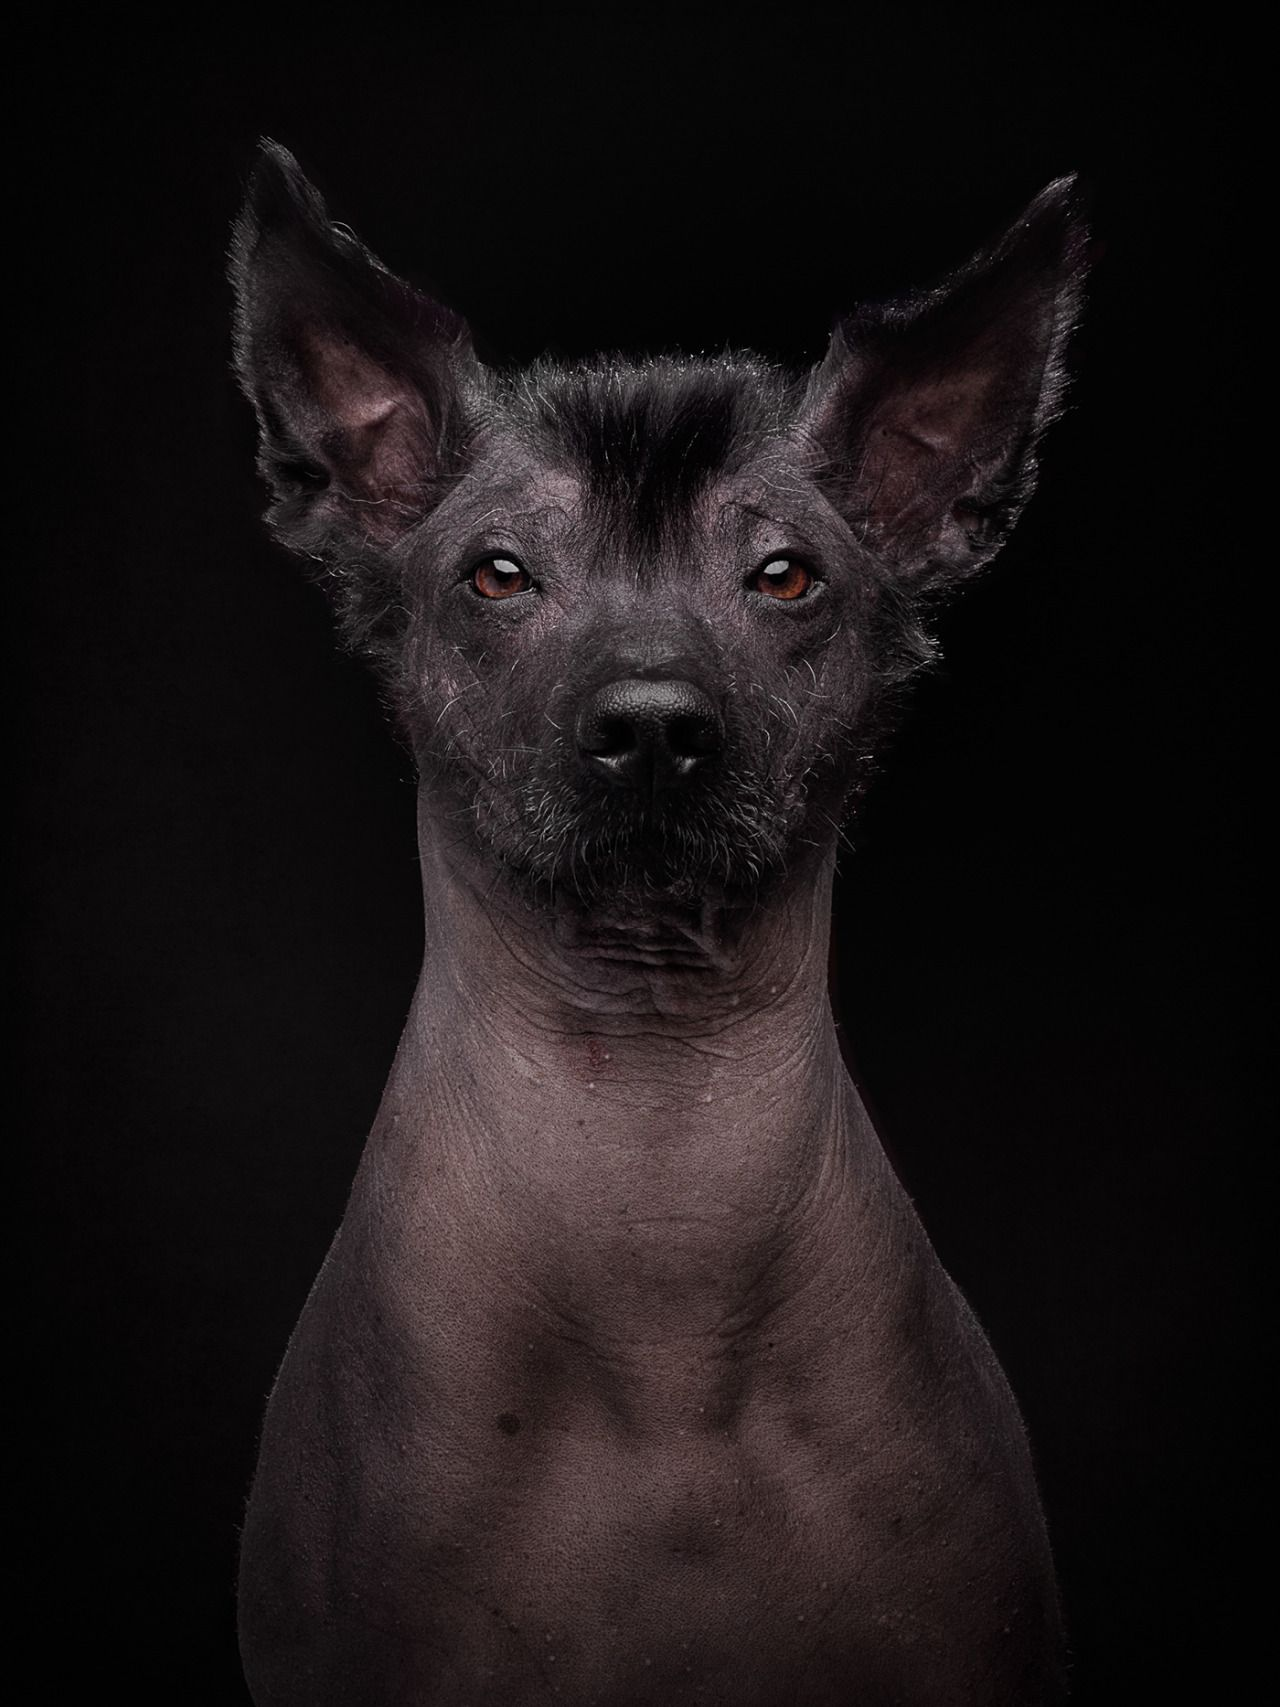 Turecepcja Photography By Klaus Dyba Mexican Hairless Dog Hairless Dog Animal Planet